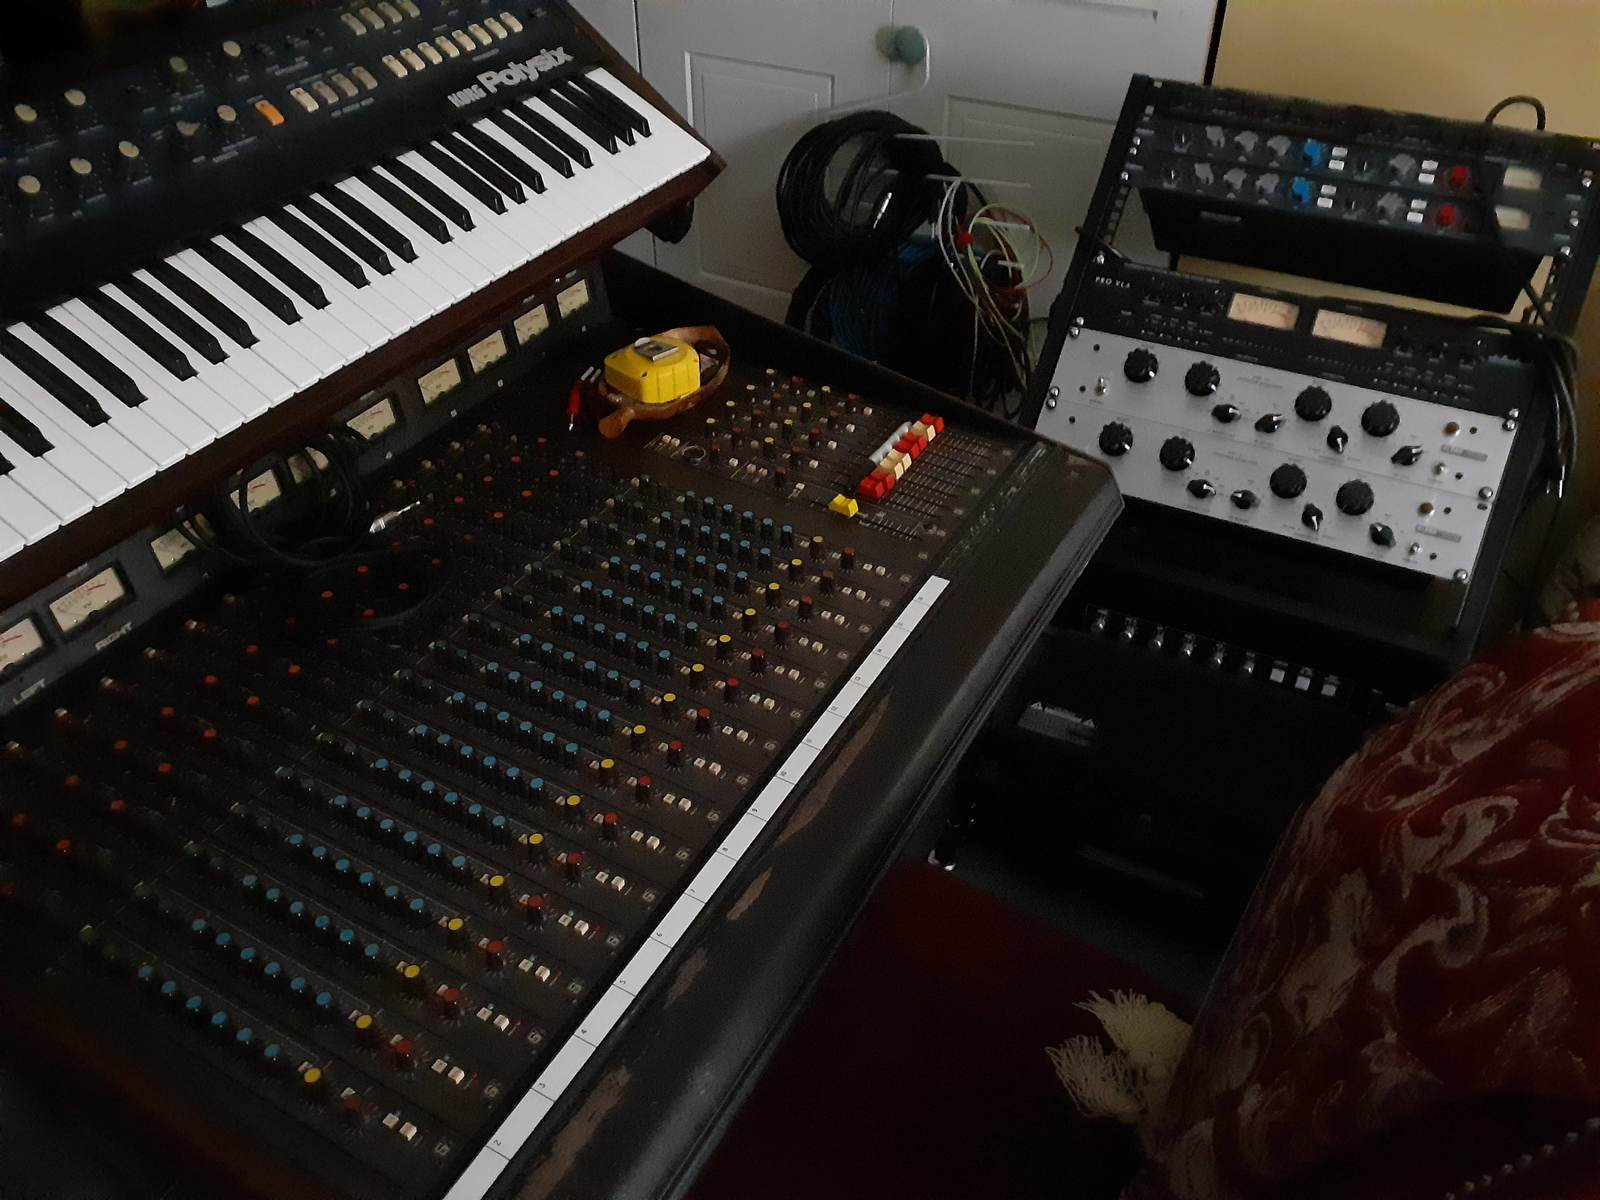 Photo of Korg PolySix and more gear in a studio, synths, and signal chain